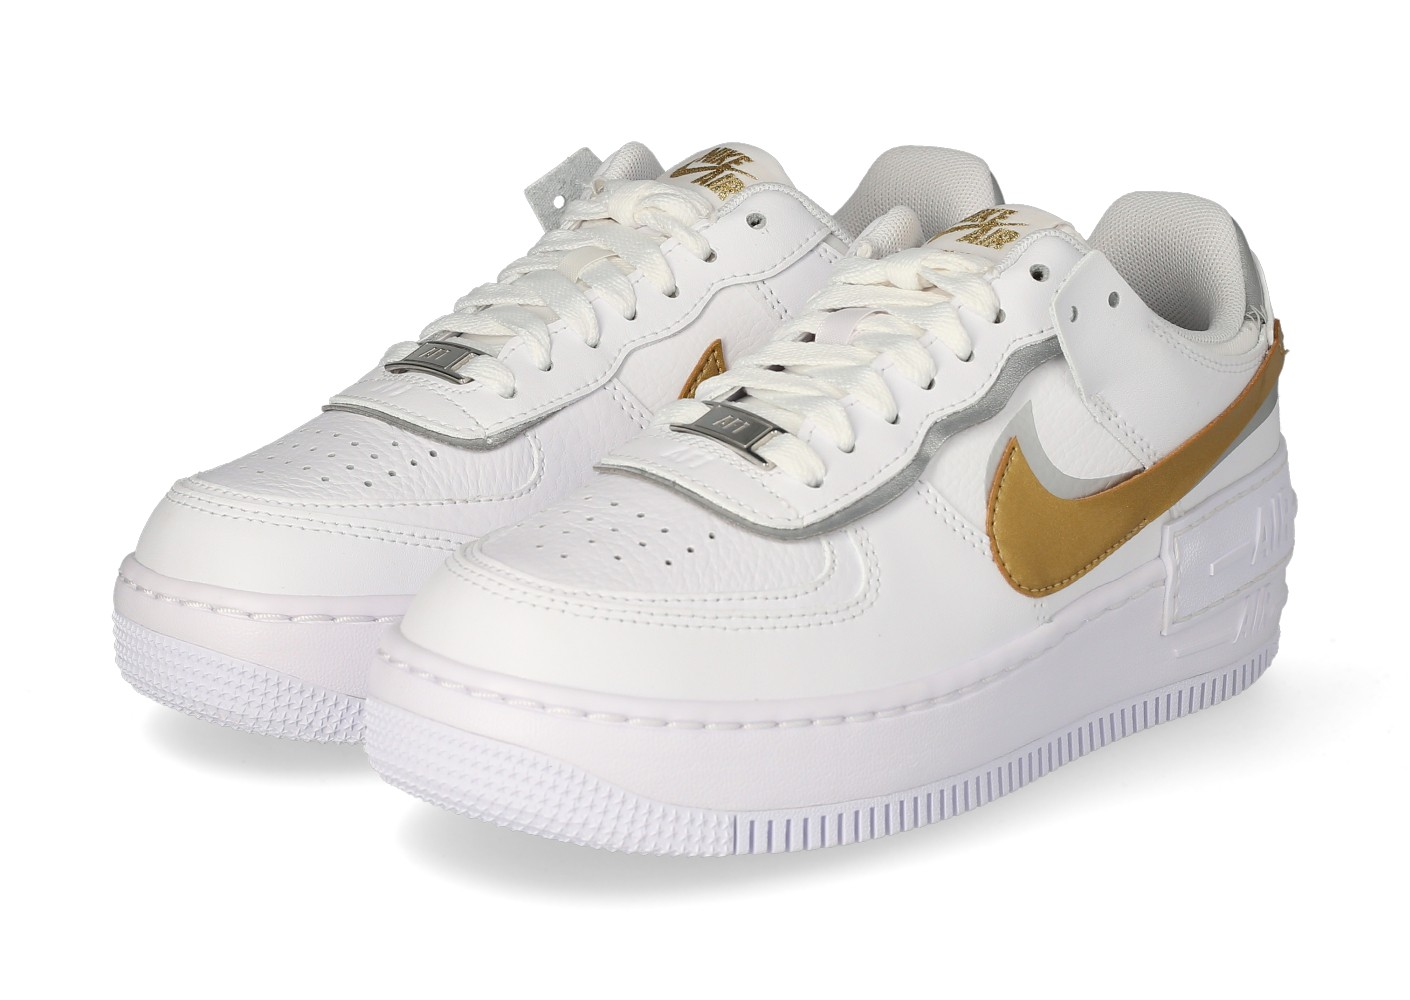 Nike Nike Air Force 1 Shadow Blanc et Or Femme - Chaussures ...